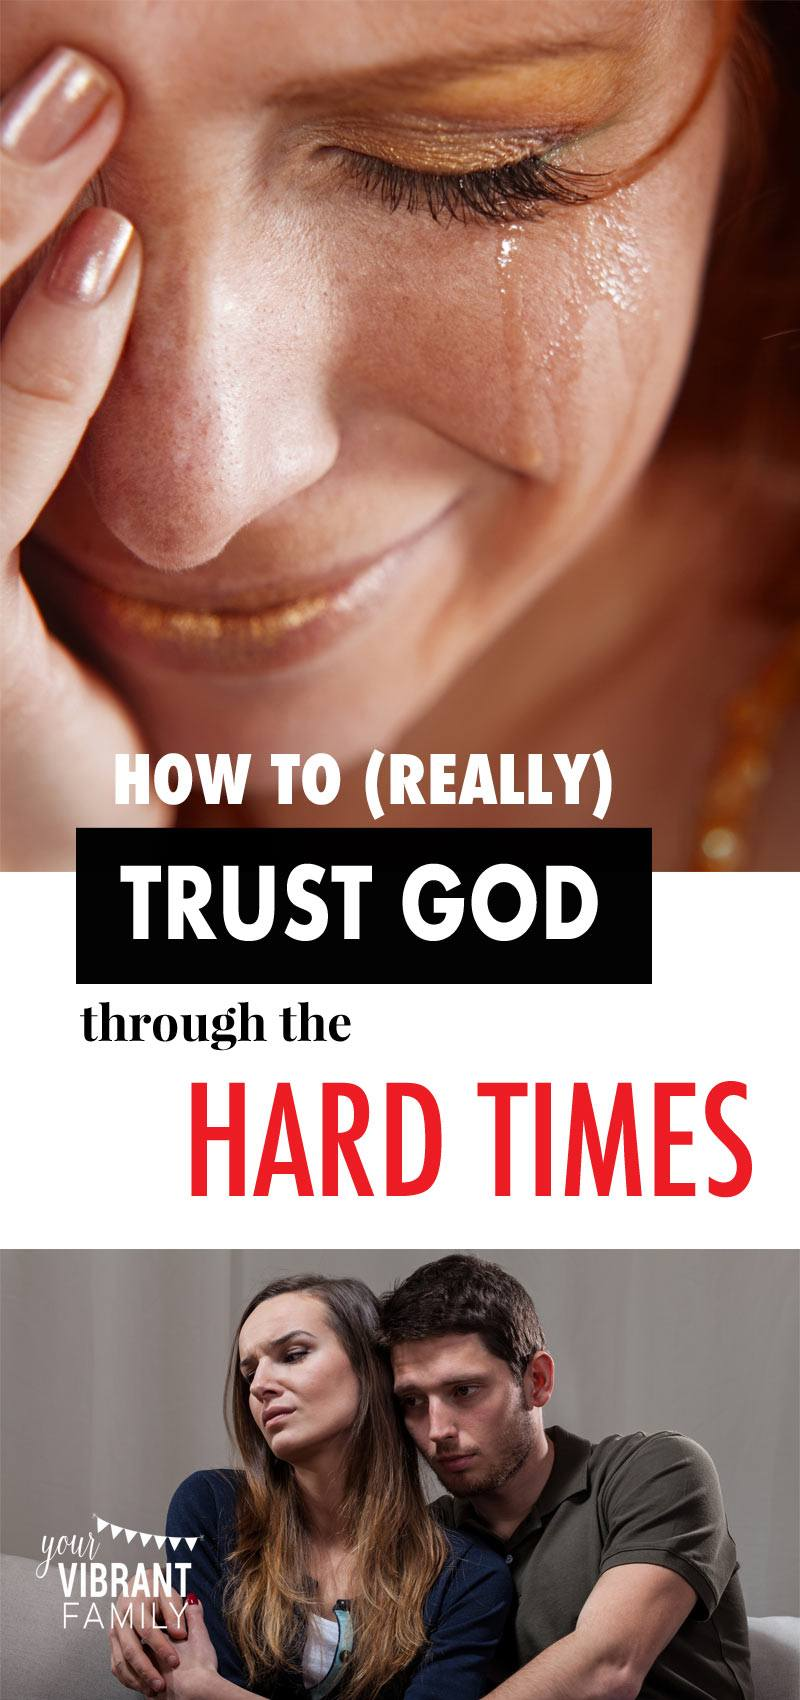 trusting God difficult times | trusting god in difficult times | bible verses hard times | having faith god through difficult times | have faith god during hard times | trusting god tough times | trust God during difficult times | trusting God during difficult times